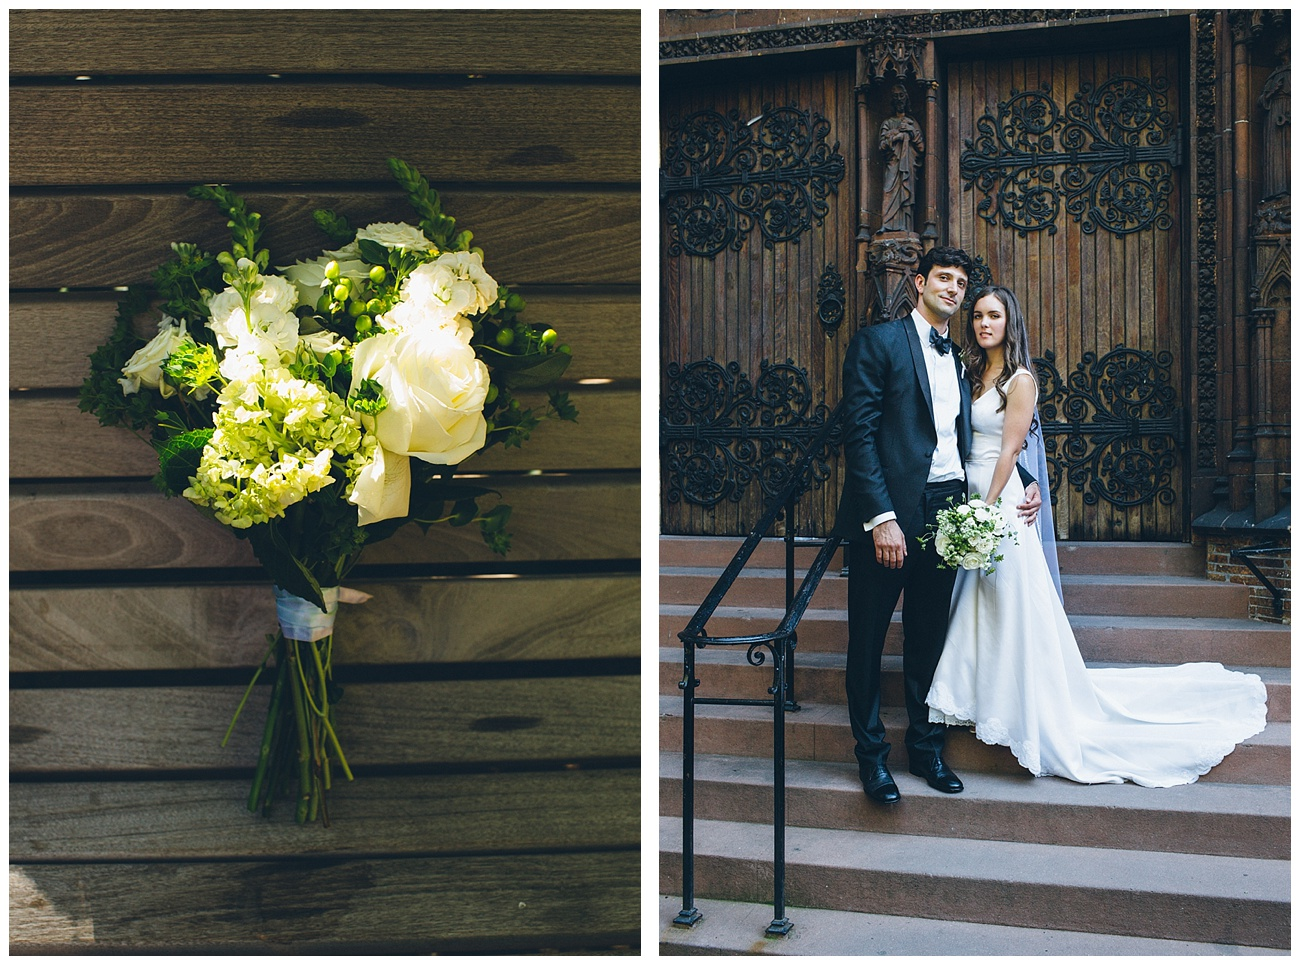 Christine Ted NYC Elopement Wedding_0023